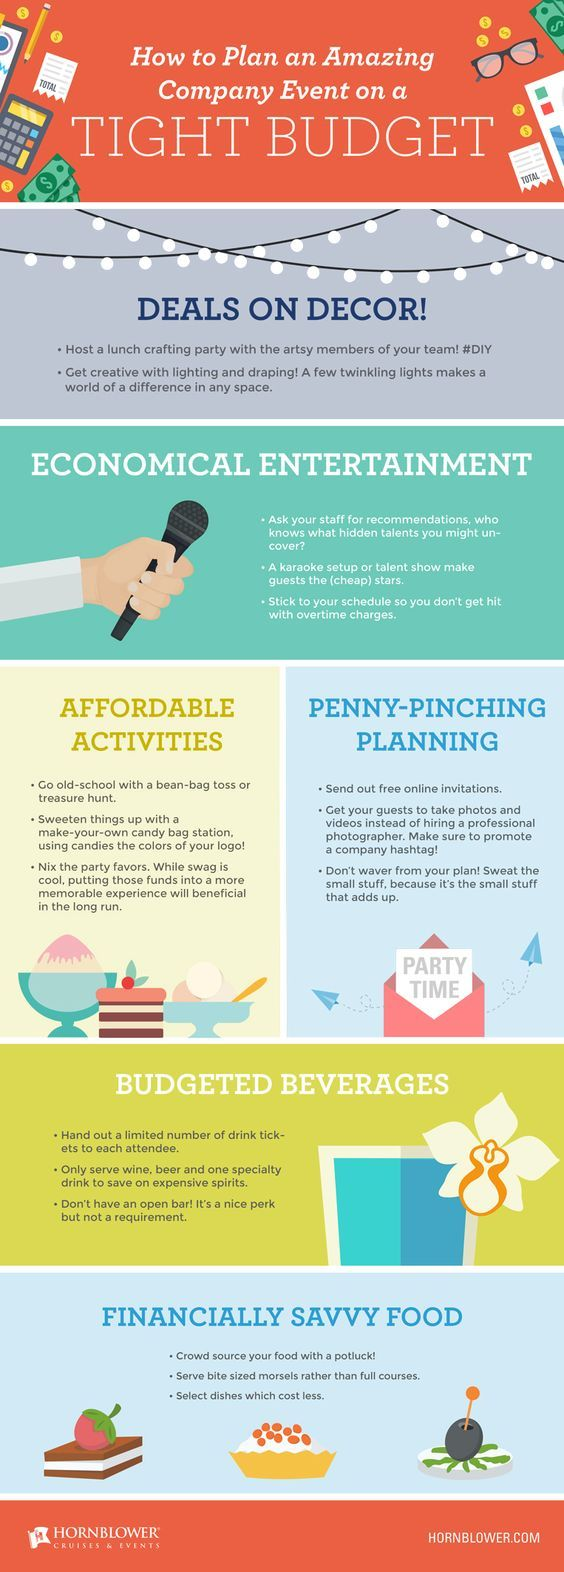 Pro tips to stay within budget for your next company event.